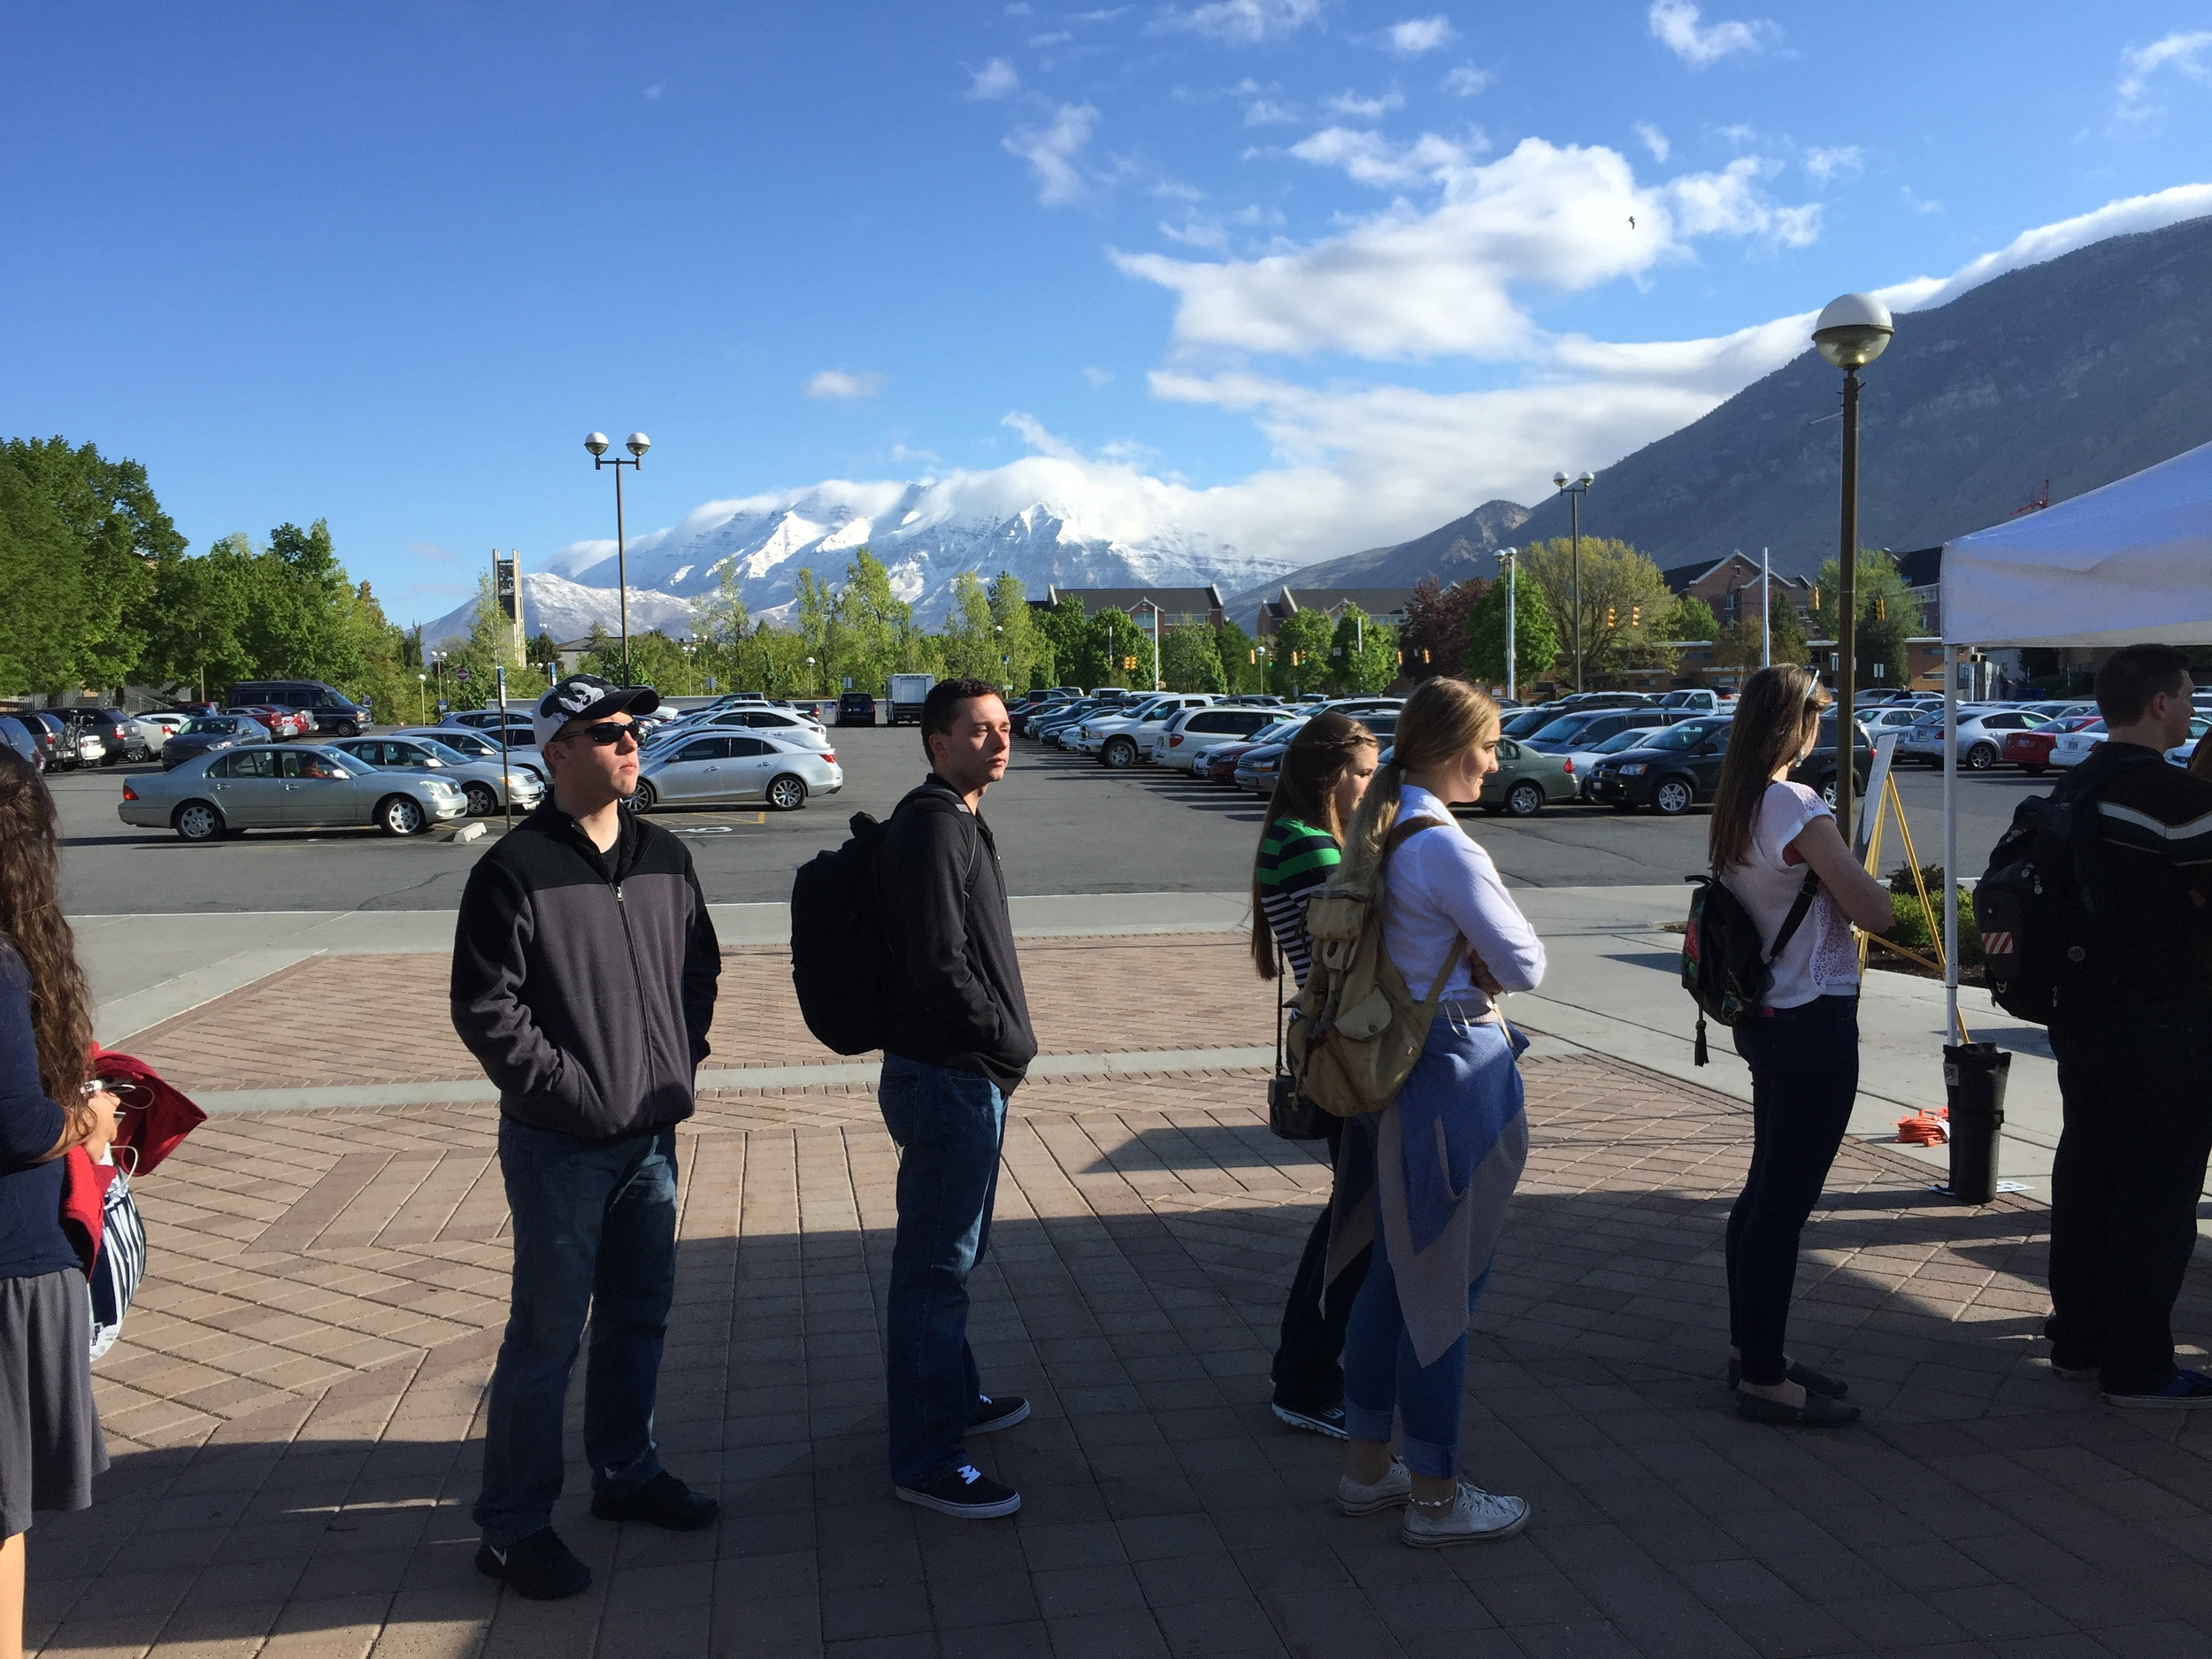 Jason in line for new student orientation. Oh those blue skies and gorgeous mountains.